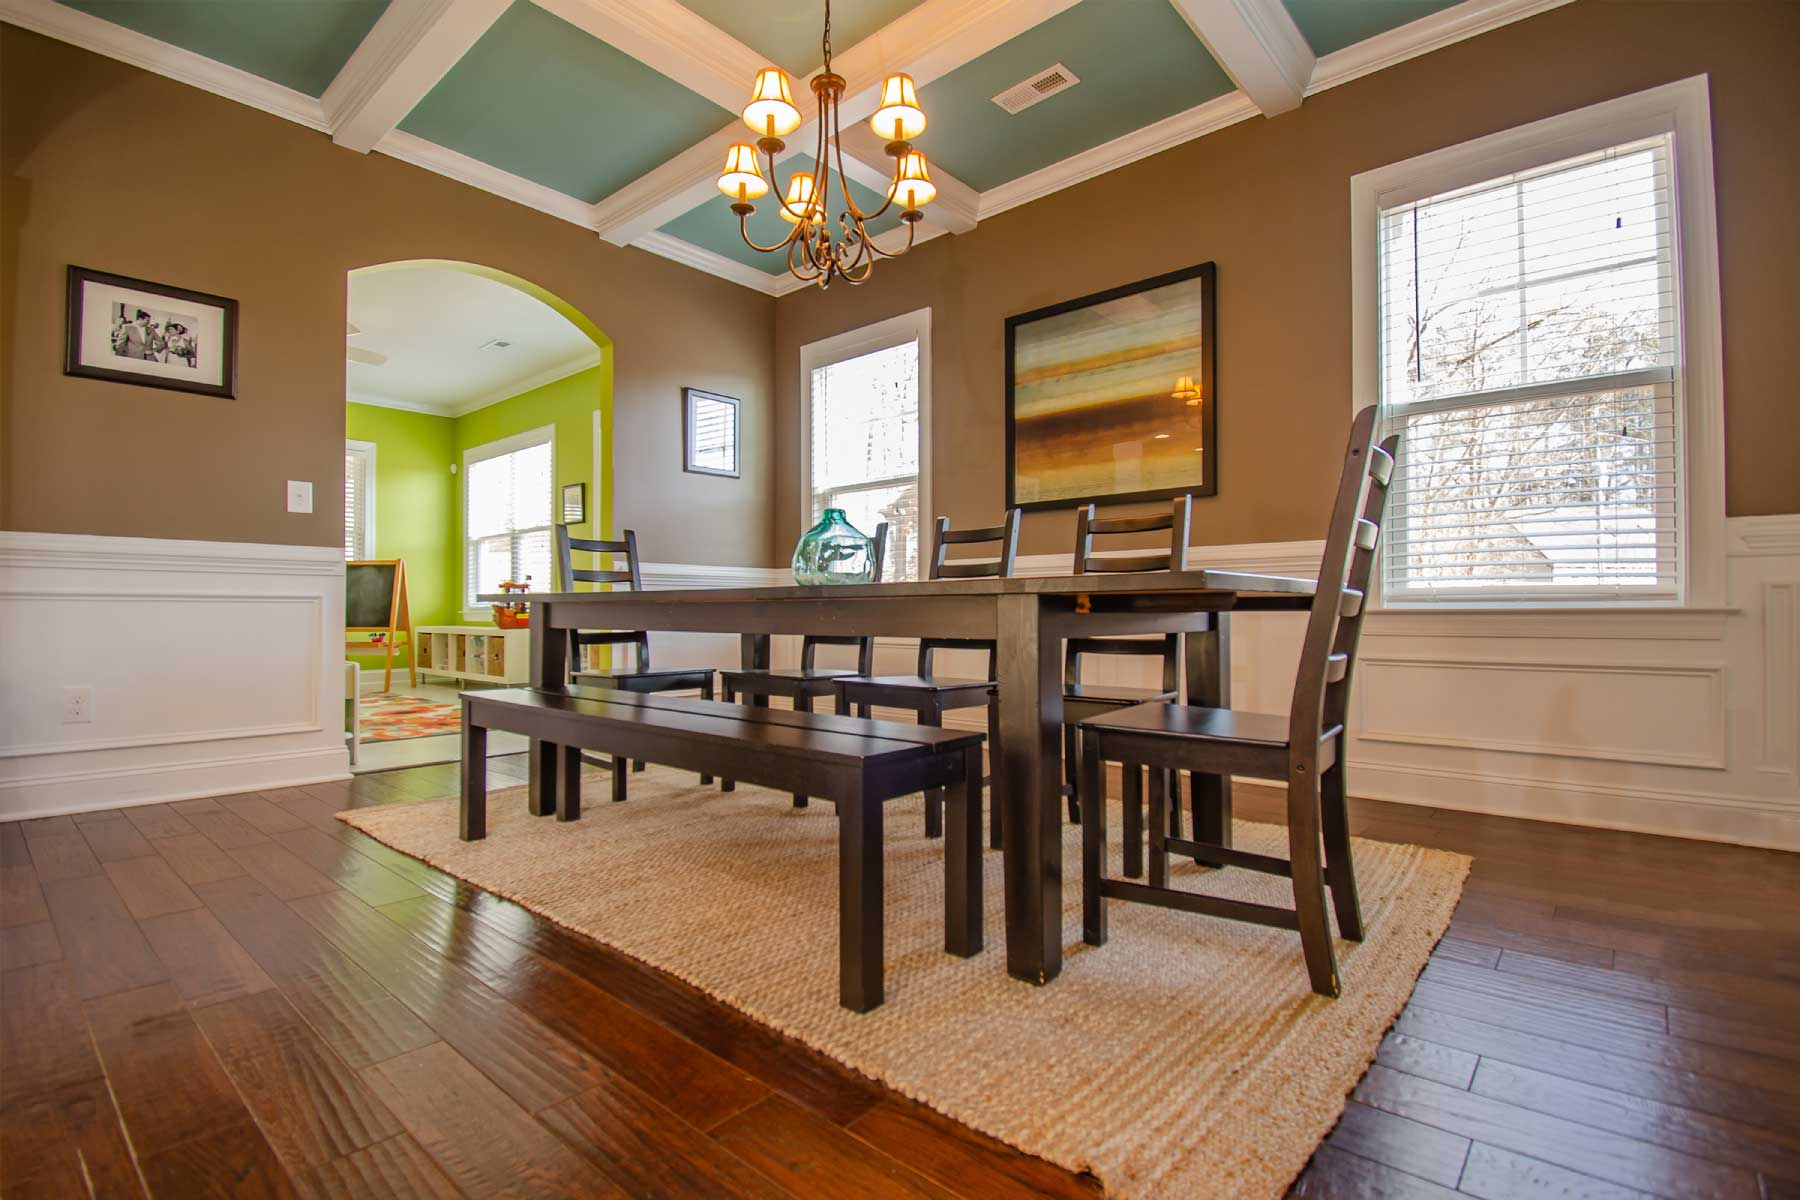 Photo of dining room with chairs